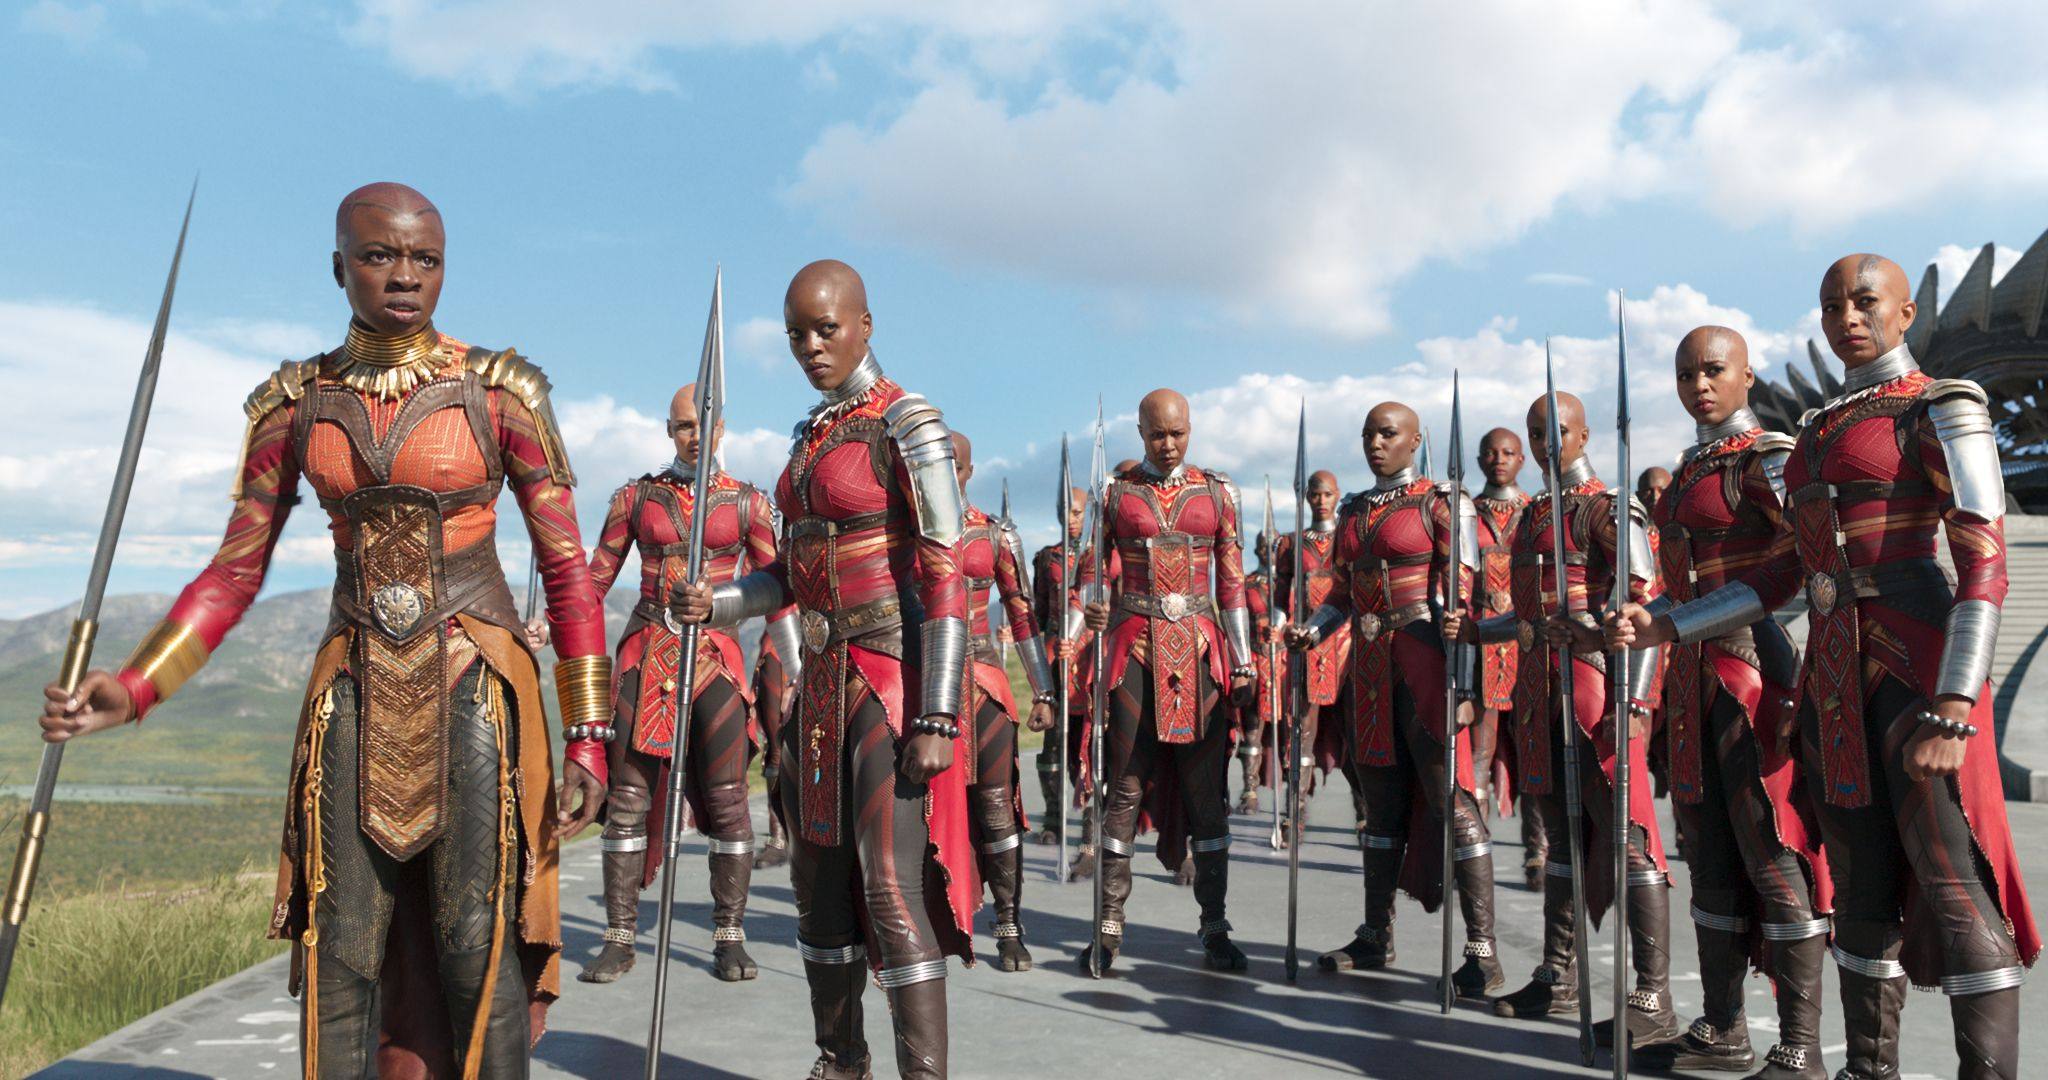 'Black Panther' tops North American box office for 2nd weekend